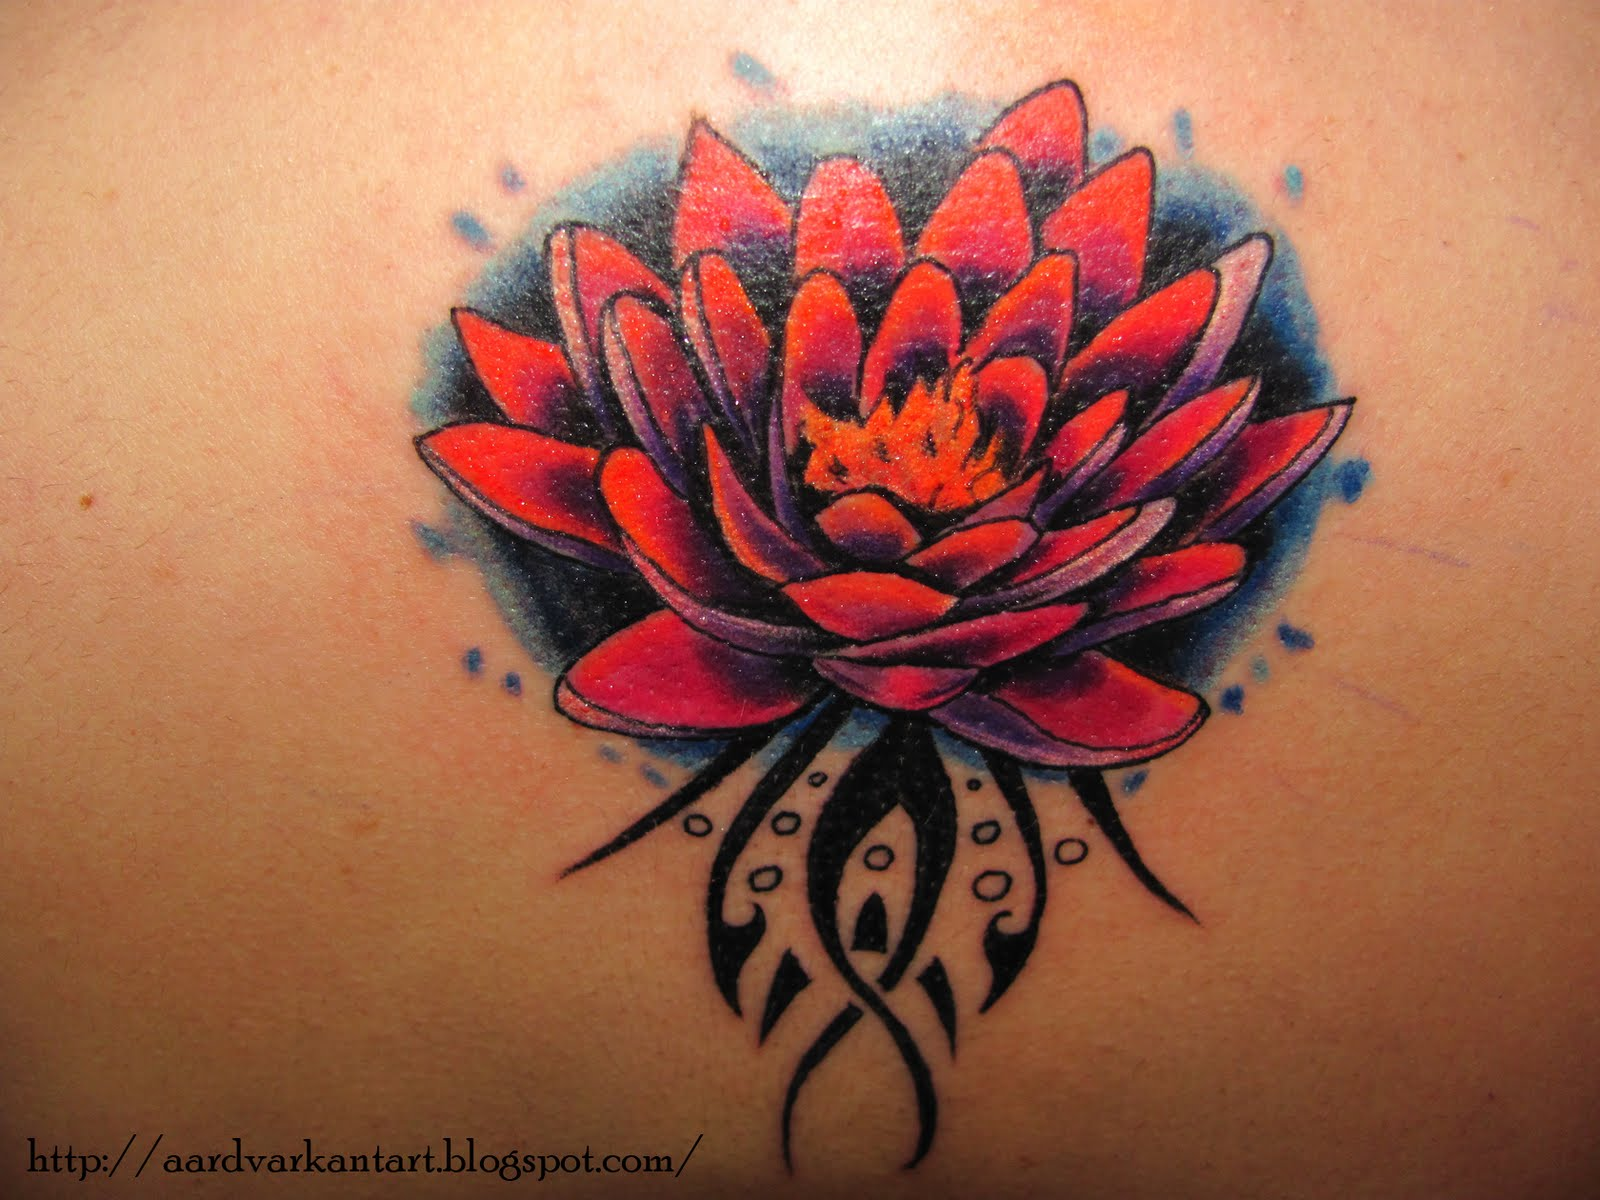 Water lily flower tattoo designs comousar water lily flower tattoo designs water lily tattoo meaning izmirmasajfo Choice Image